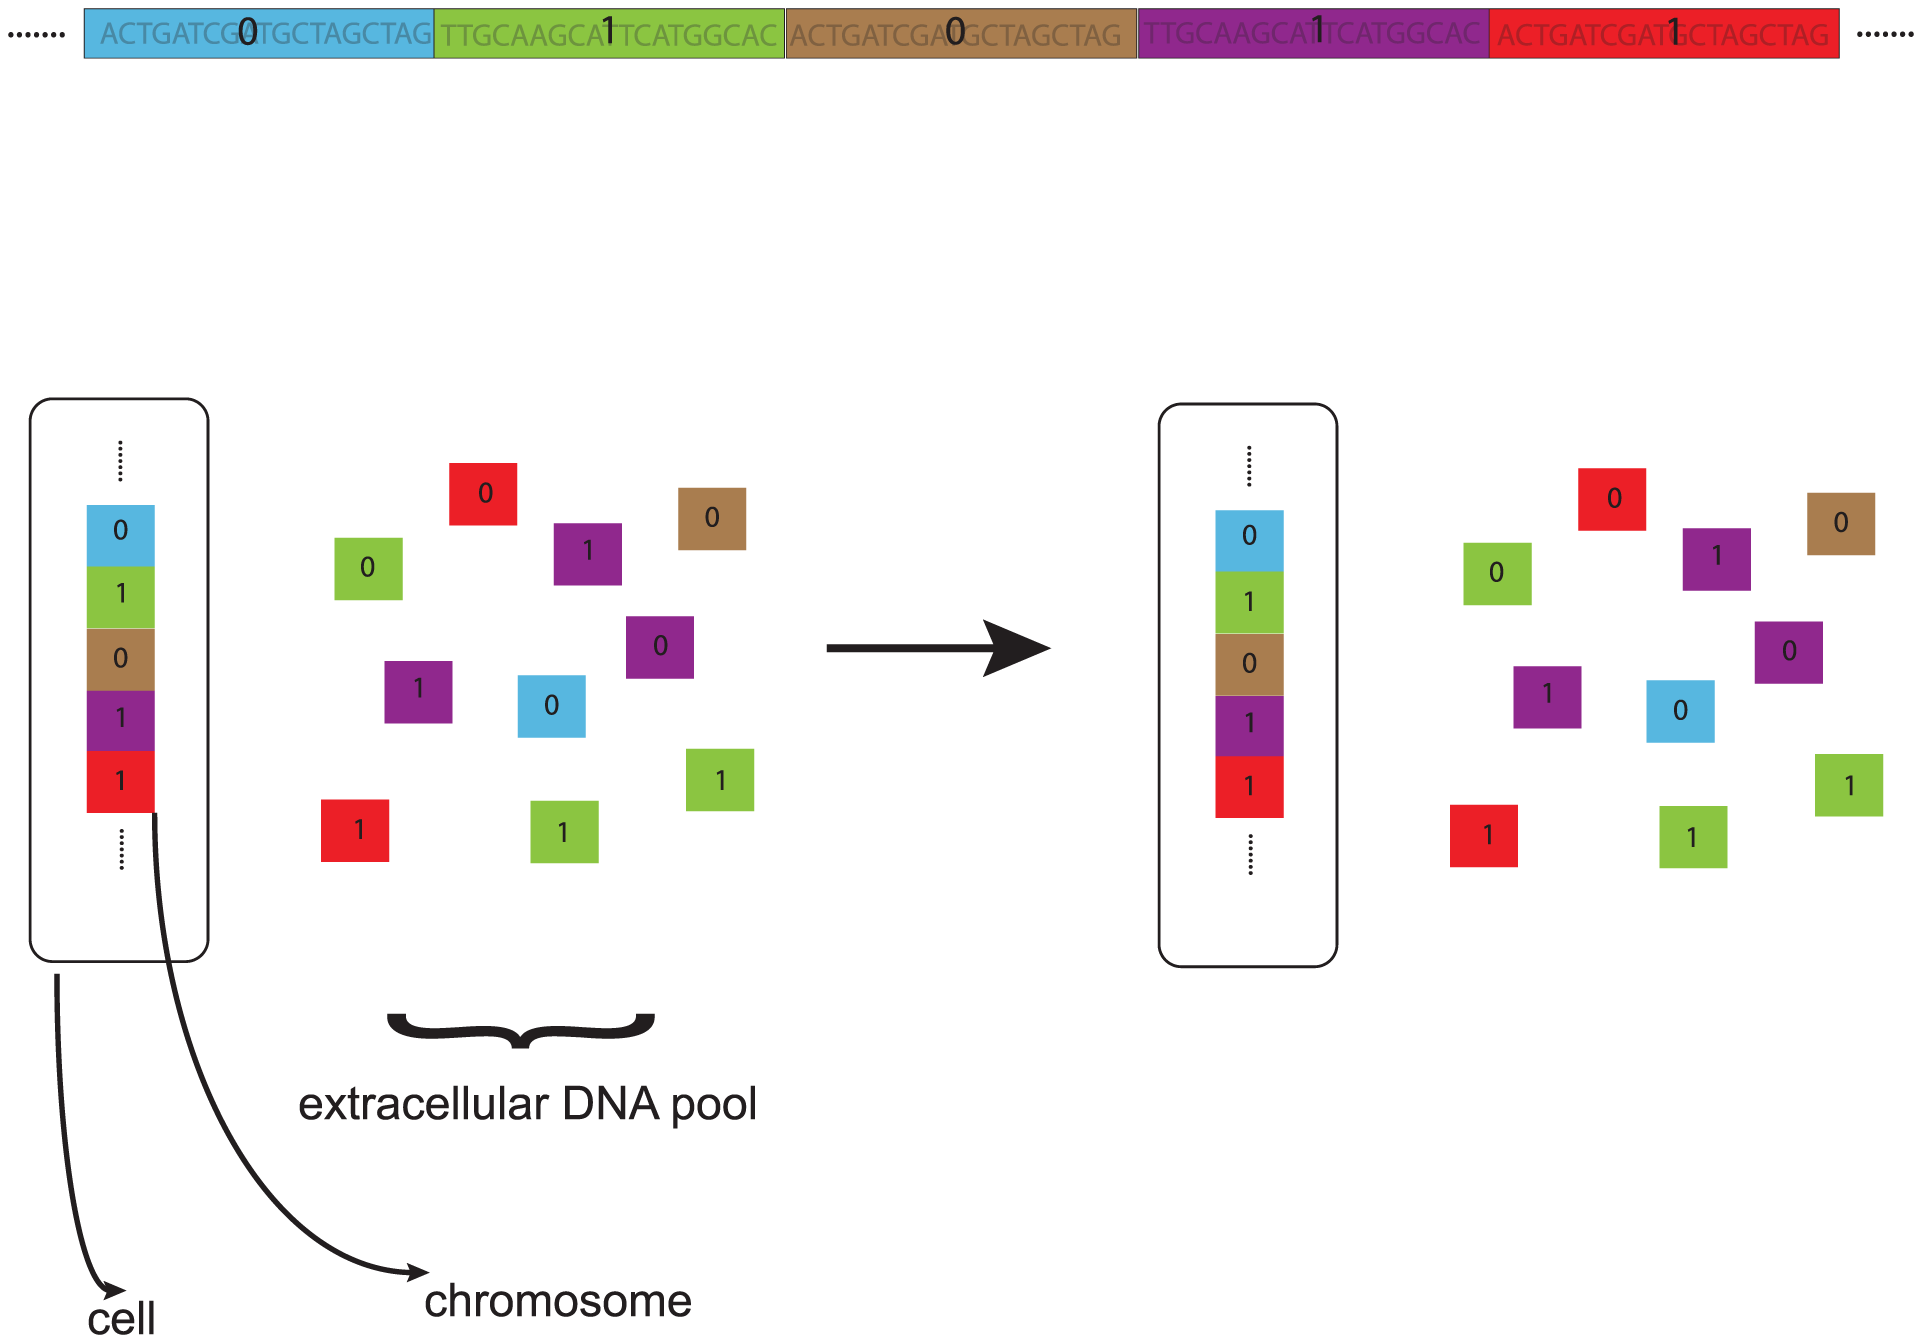 Genome and recombination model.